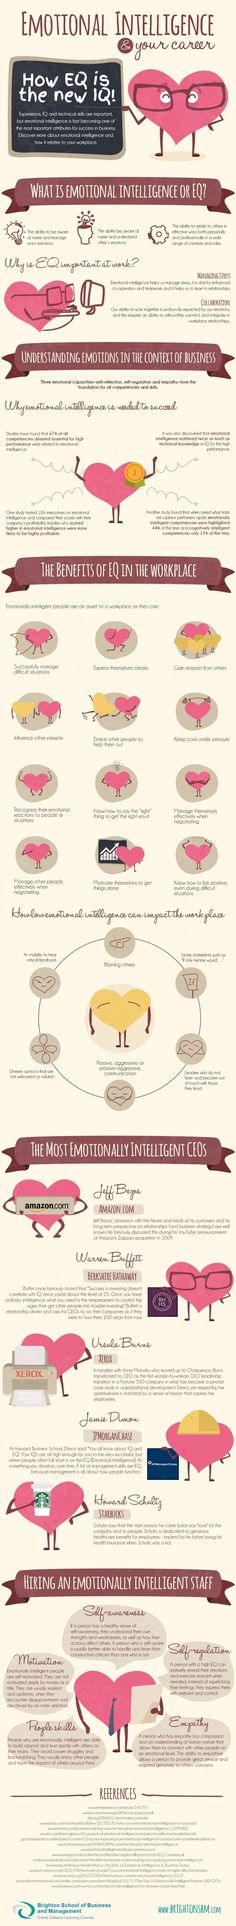 "Emotional Intelligence and Your Career <a class=""pintag"" href=""/explore/Infographic/"" title=""#Infographic explore Pinterest"">#Infographic</a>"